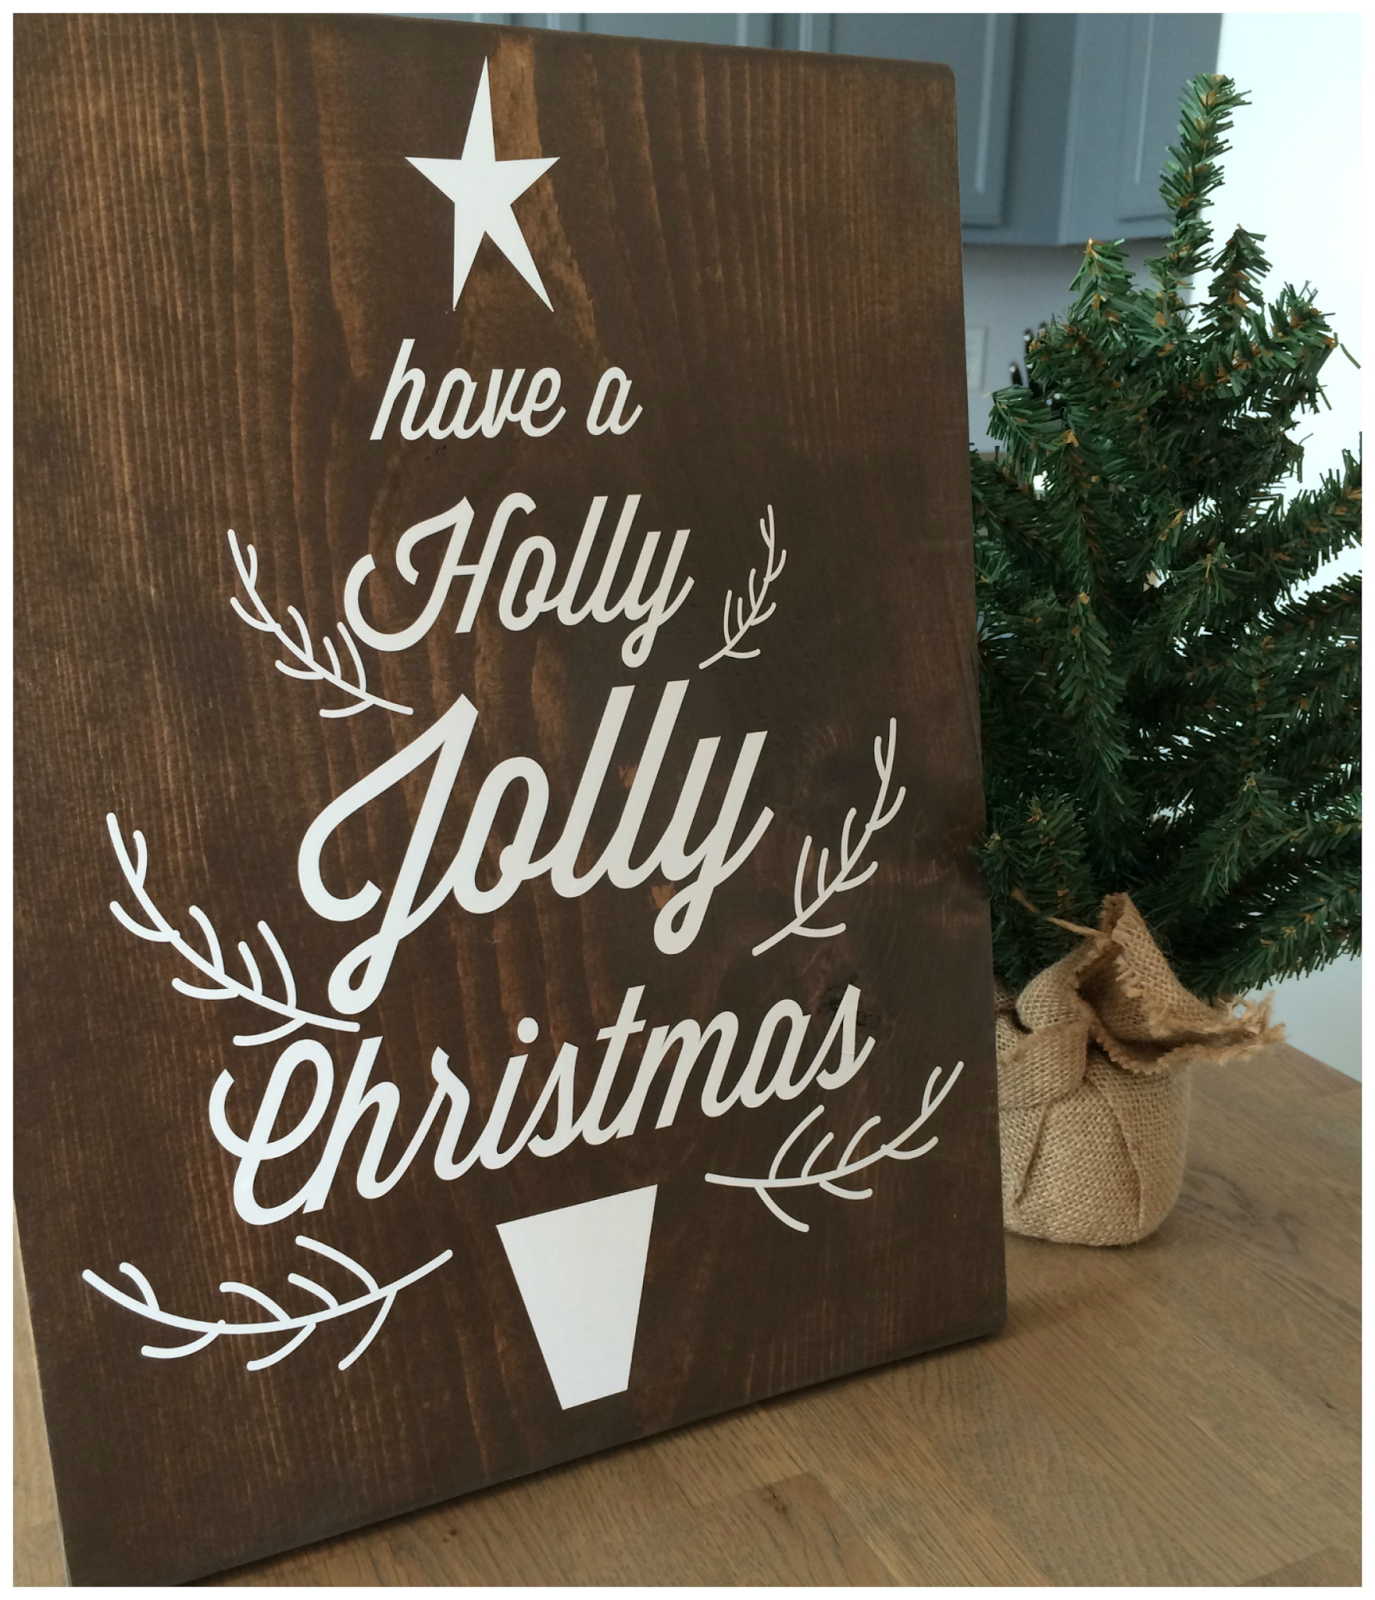 holiday signs thanksgiving and christmas decor wooden christmas and holiday signs diy handmade gifts silhouette cameopopular with the poplins - Wooden Christmas Signs